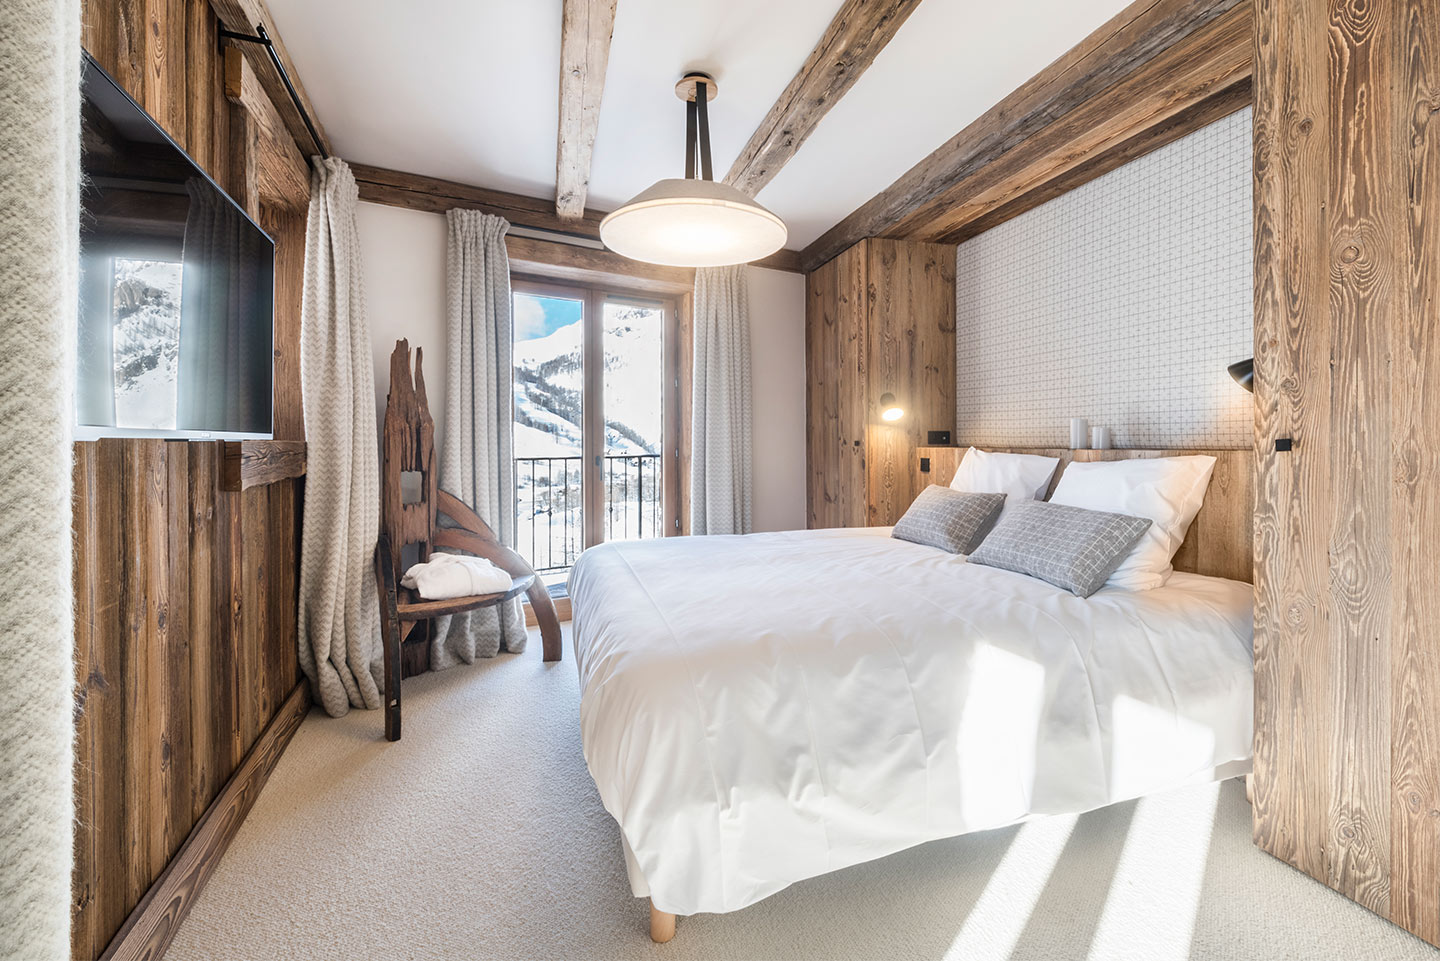 chalet-ovalala-val-disere-room1-beds